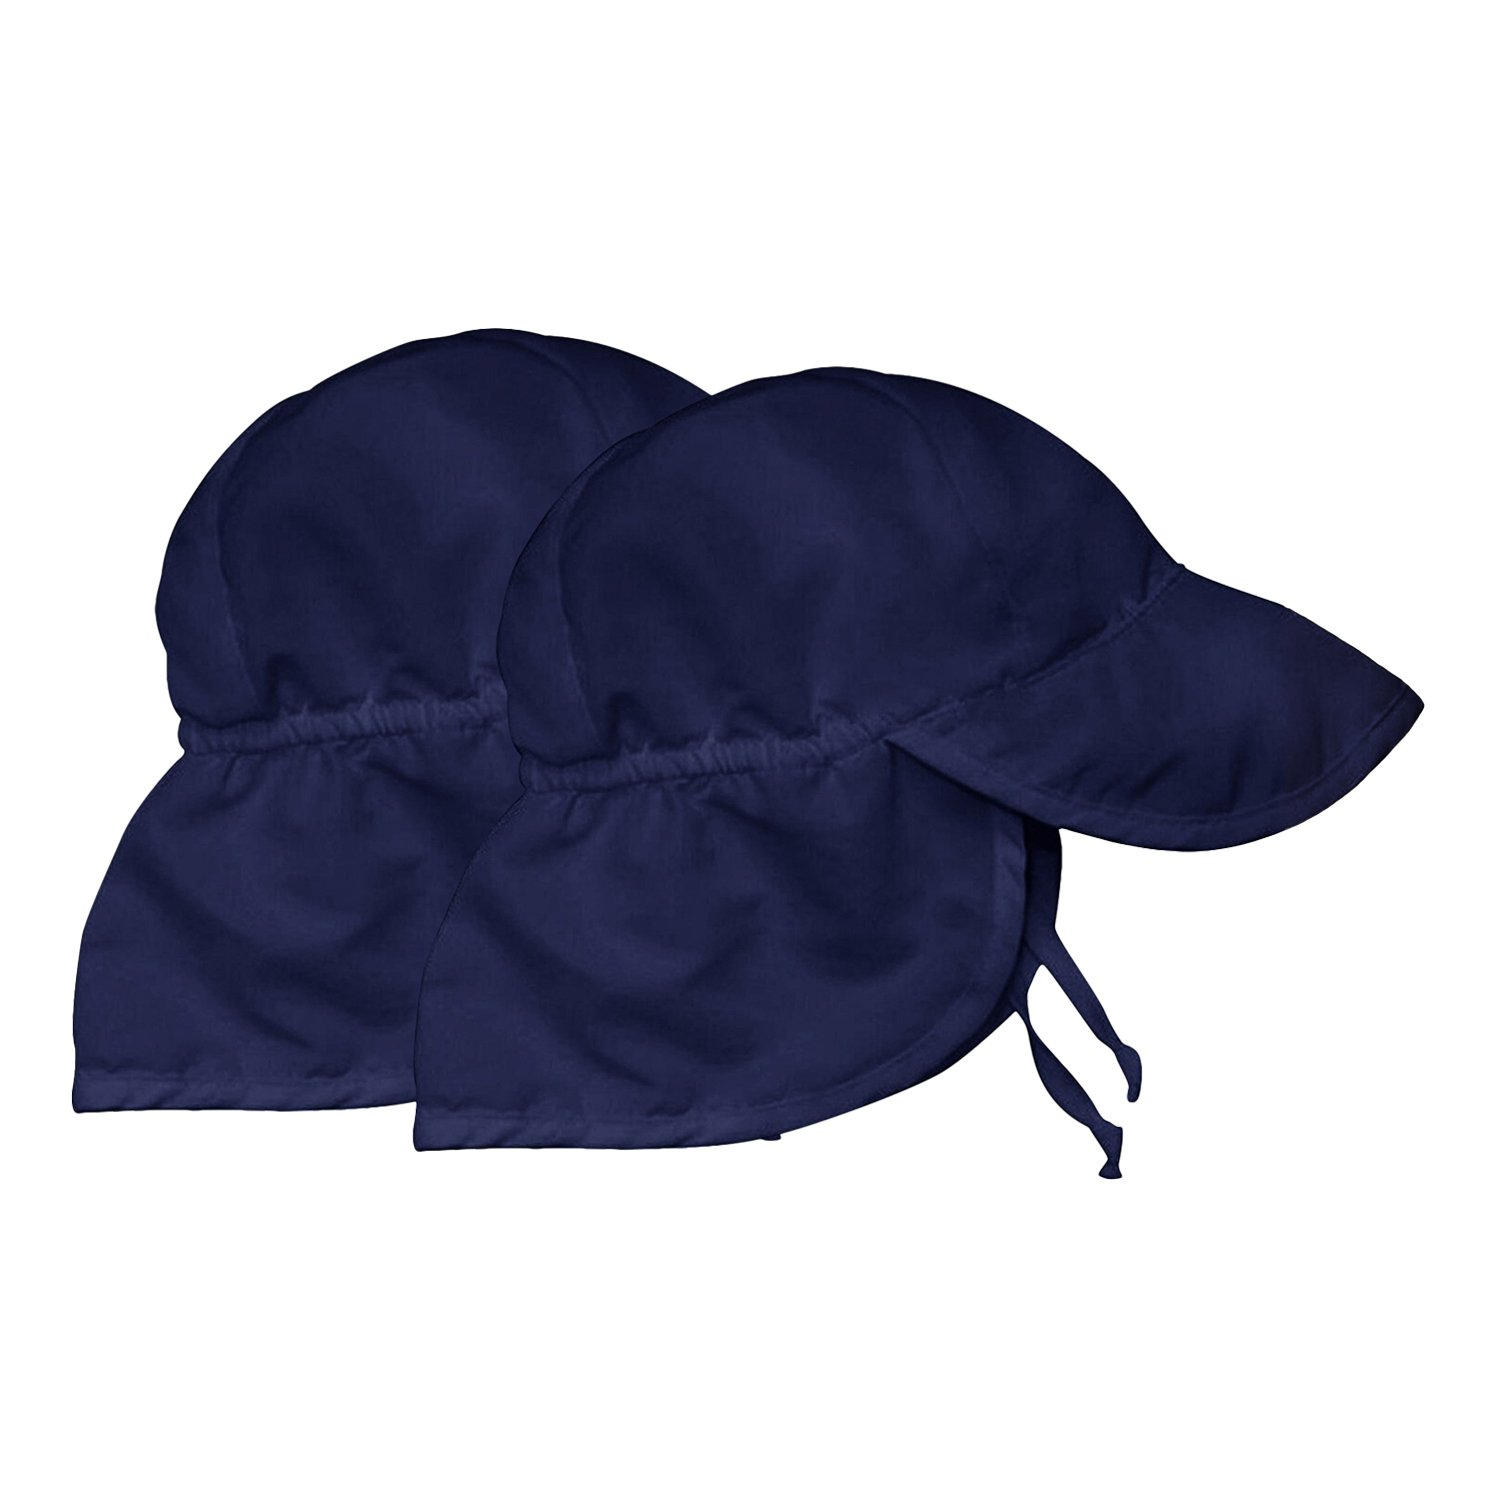 Kids Sun Hat Boys/Girls Toddlers Sun Protection Hat UPF50+ Long Neck Flap Swim Hat (2 Navy Blue)